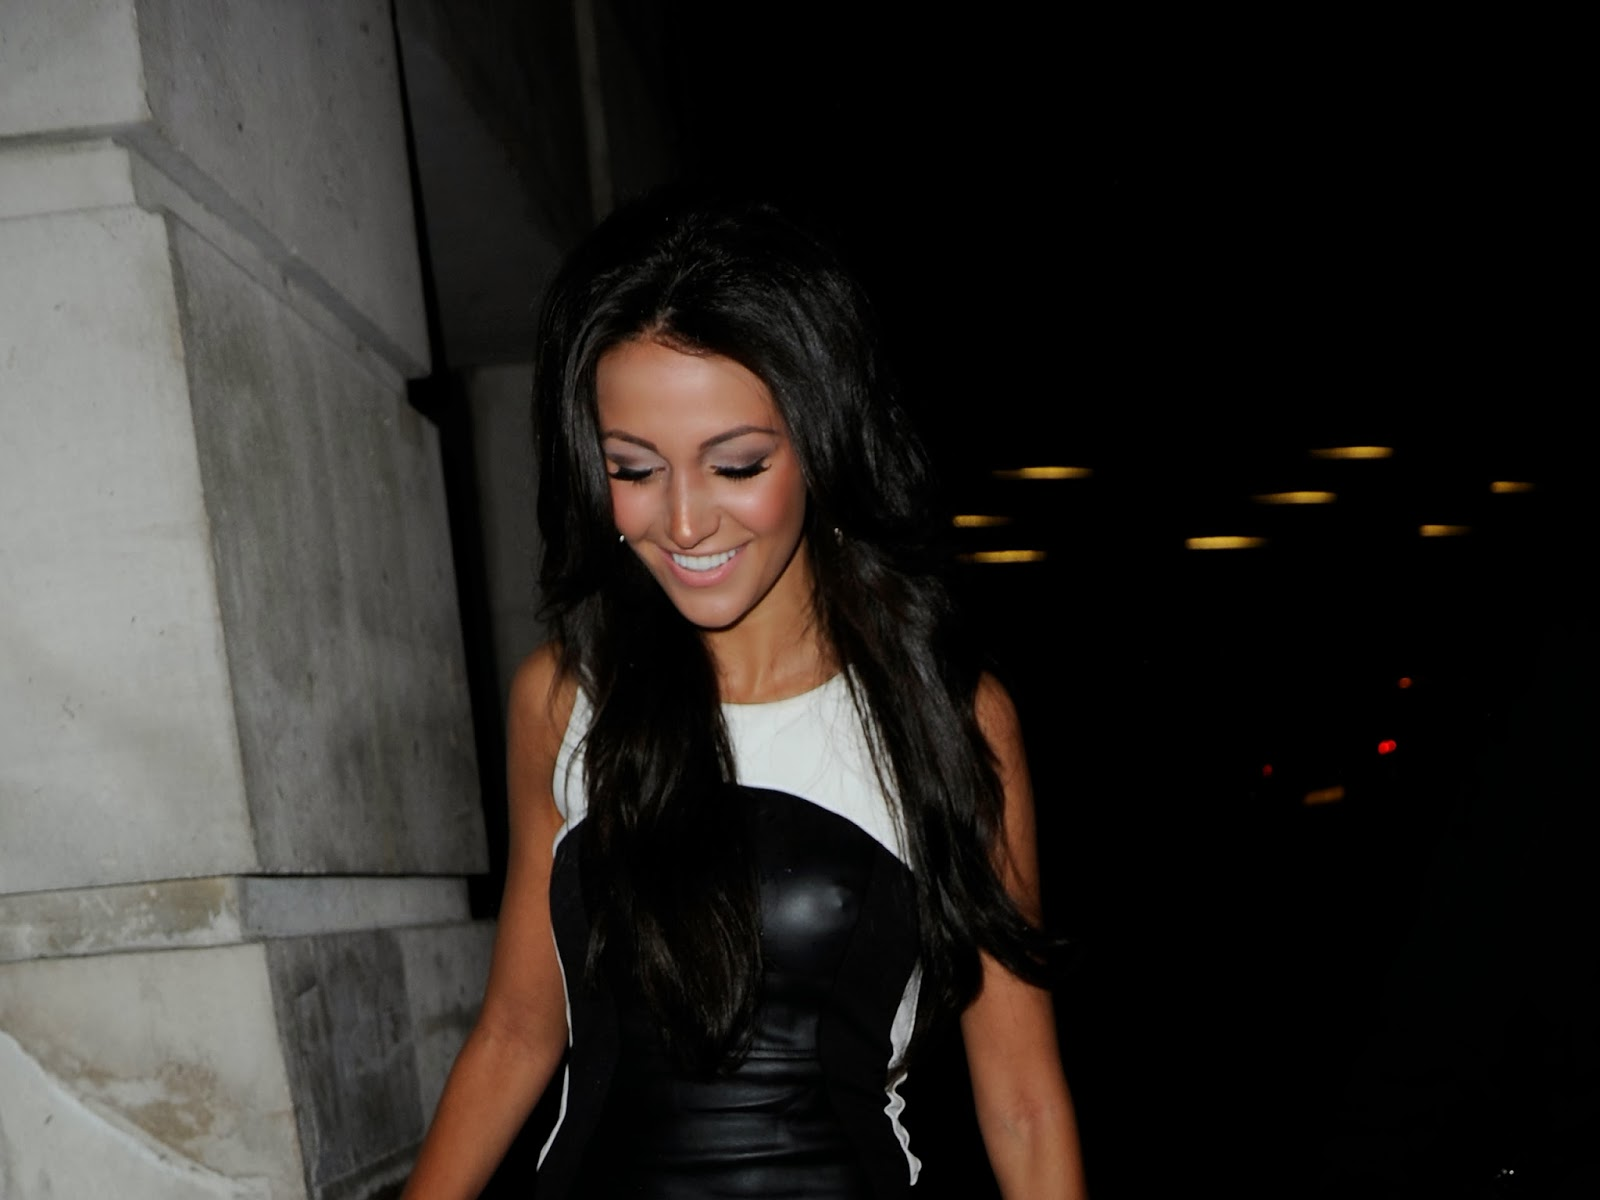 michelle keegan hq wallpapers - photo #24